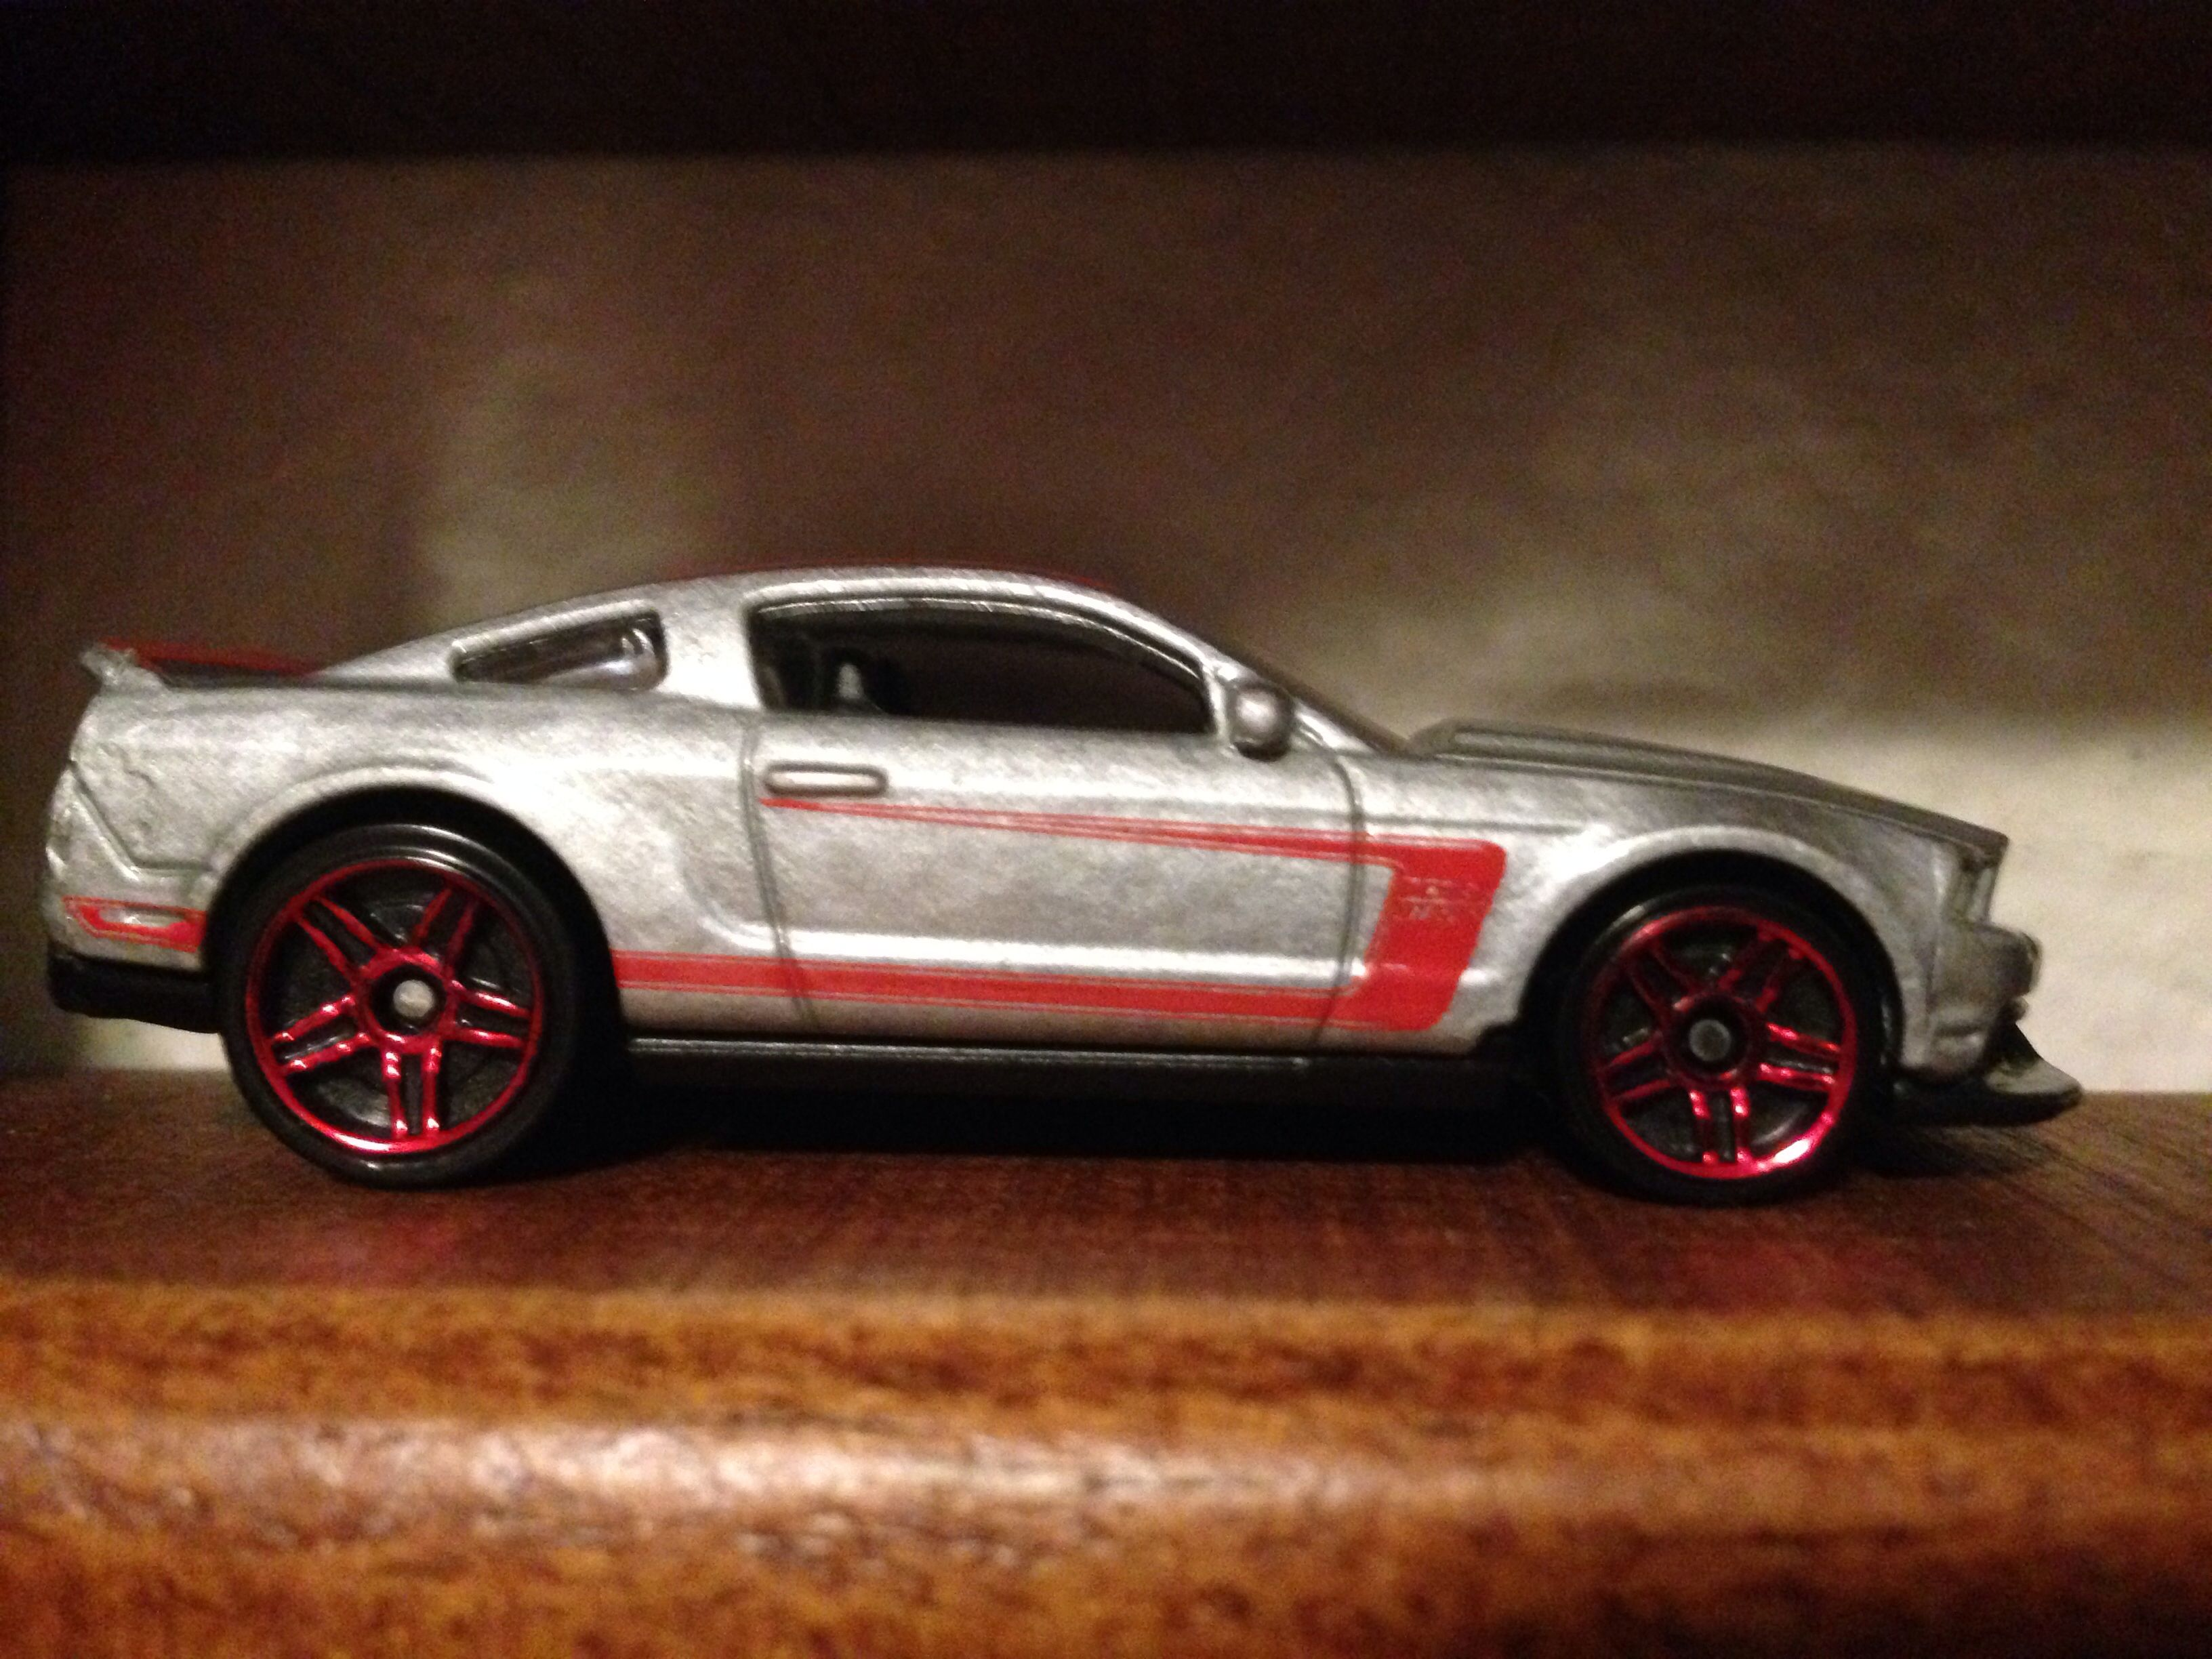 Hot Wheels 12 Ford Mustang Boss 302 Laguna Seca Silver Have 1 Ford Mustang Boss 302 Hot Wheels Mustang Boss 302